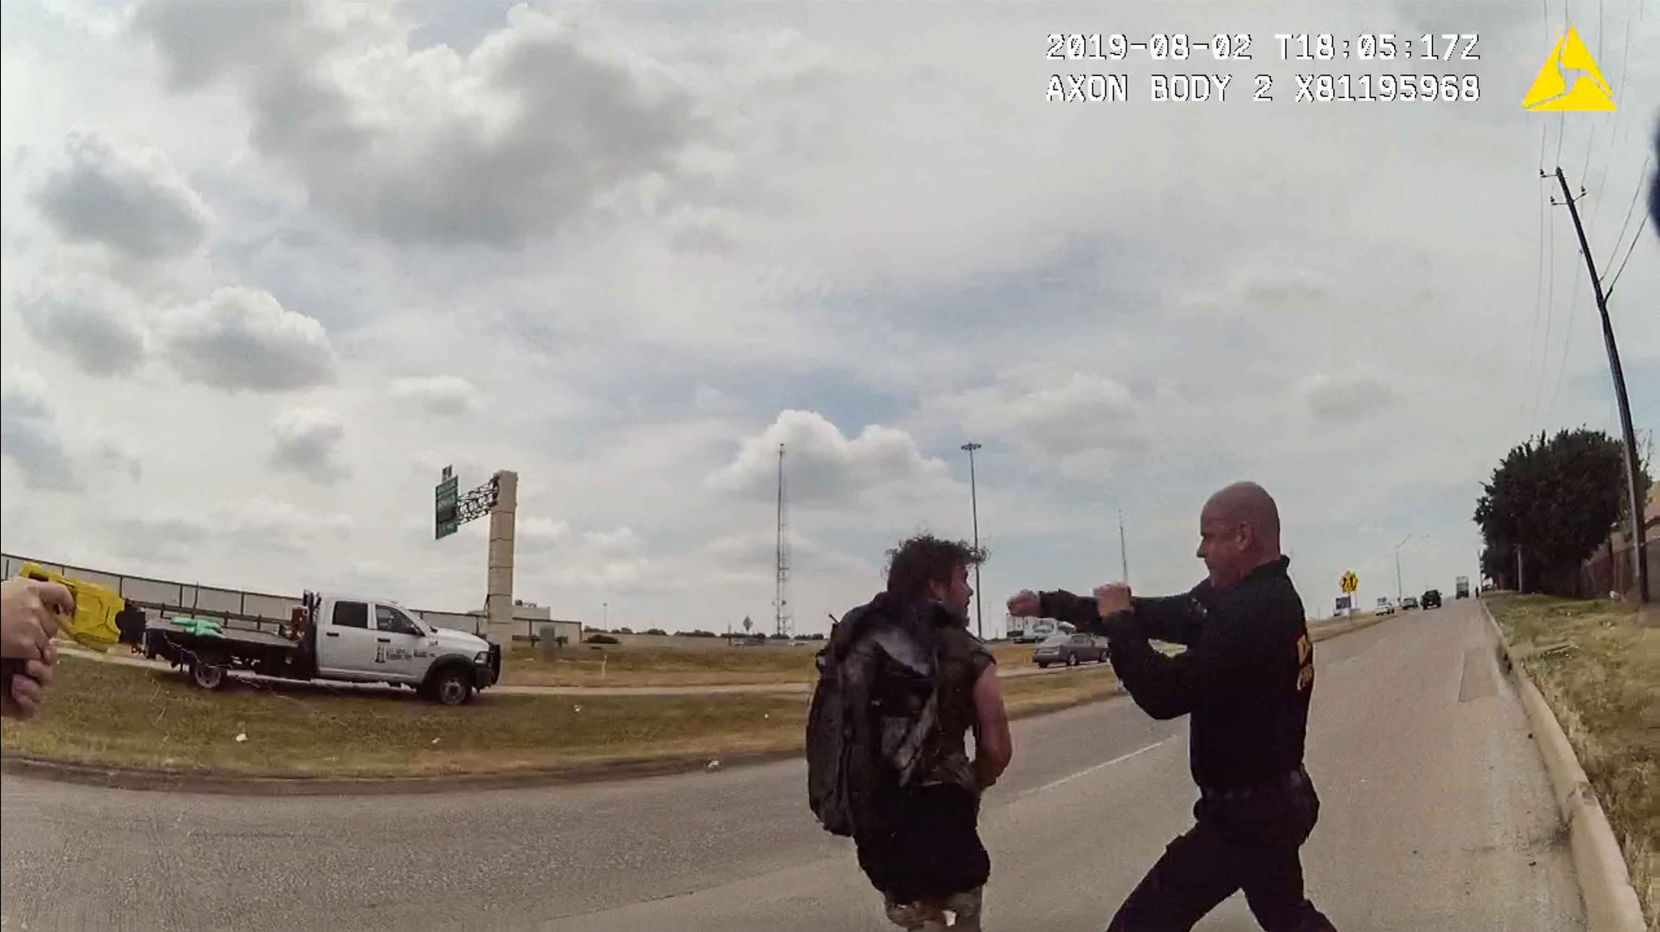 A frame from a police body cam shows Dallas firefighter Brad Cox during an altercation with Kyle Robert Vess on Aug. 2, 2019.